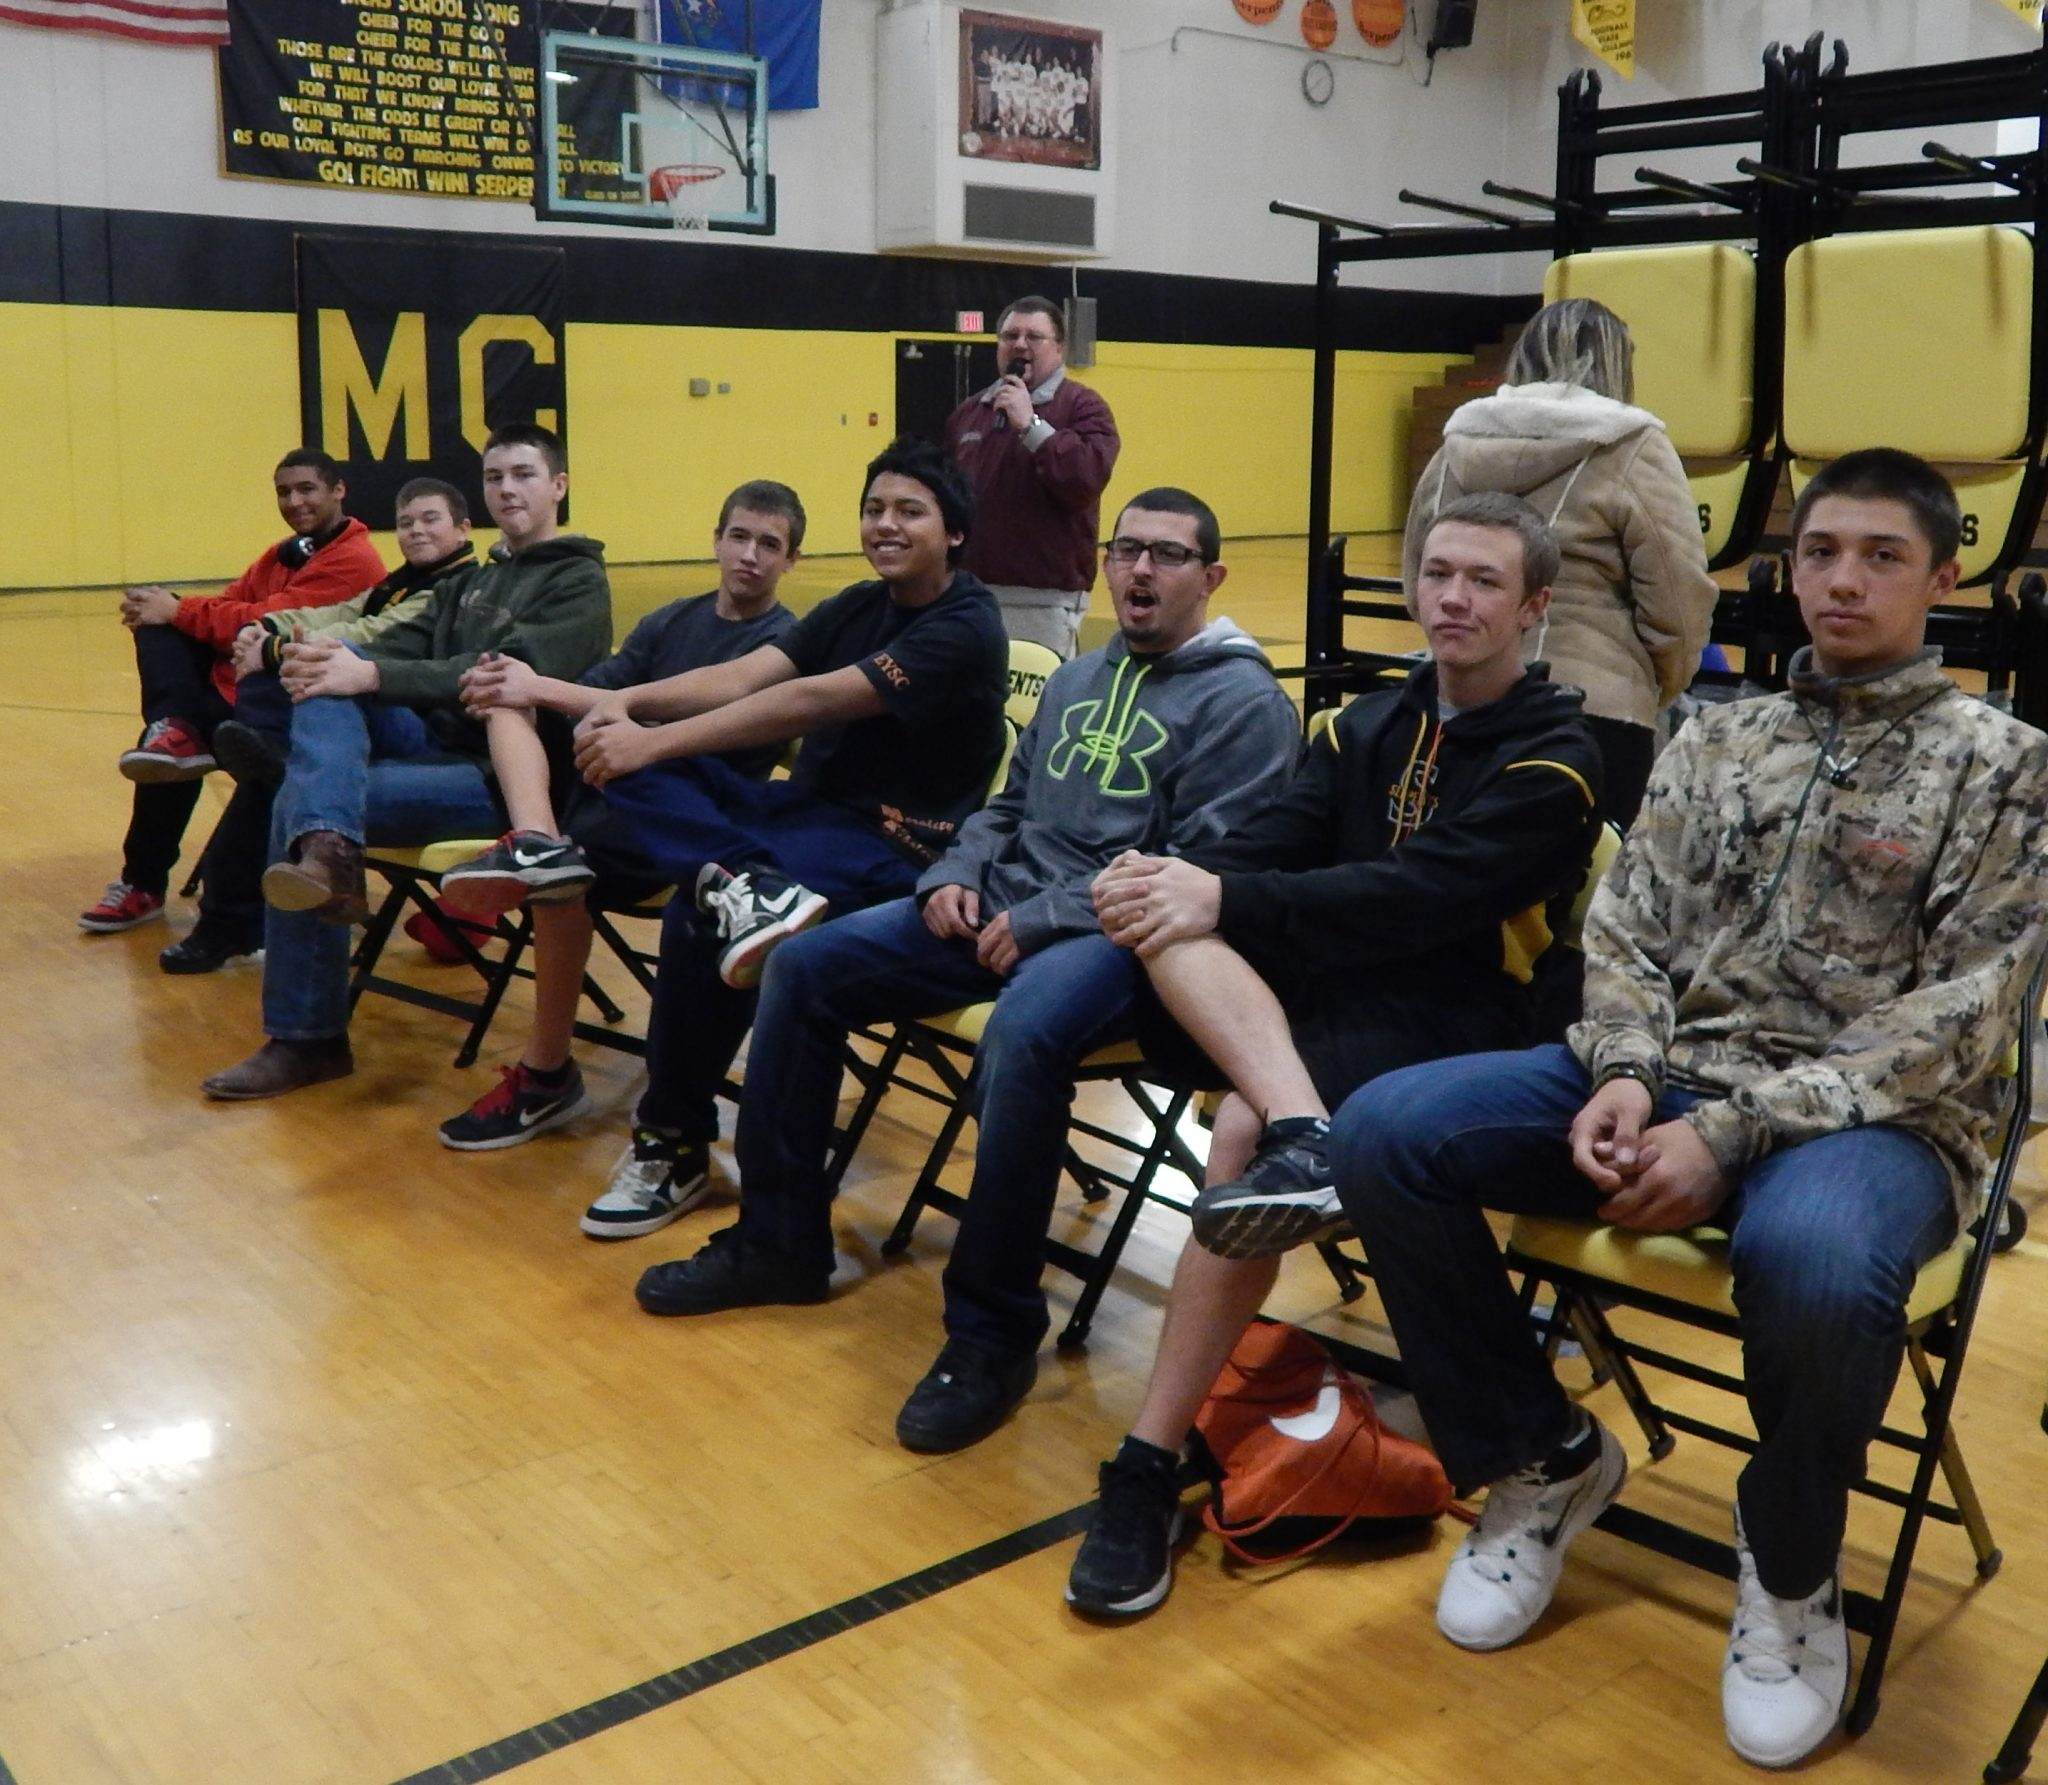 Local Booster Club supports athletes by giving back